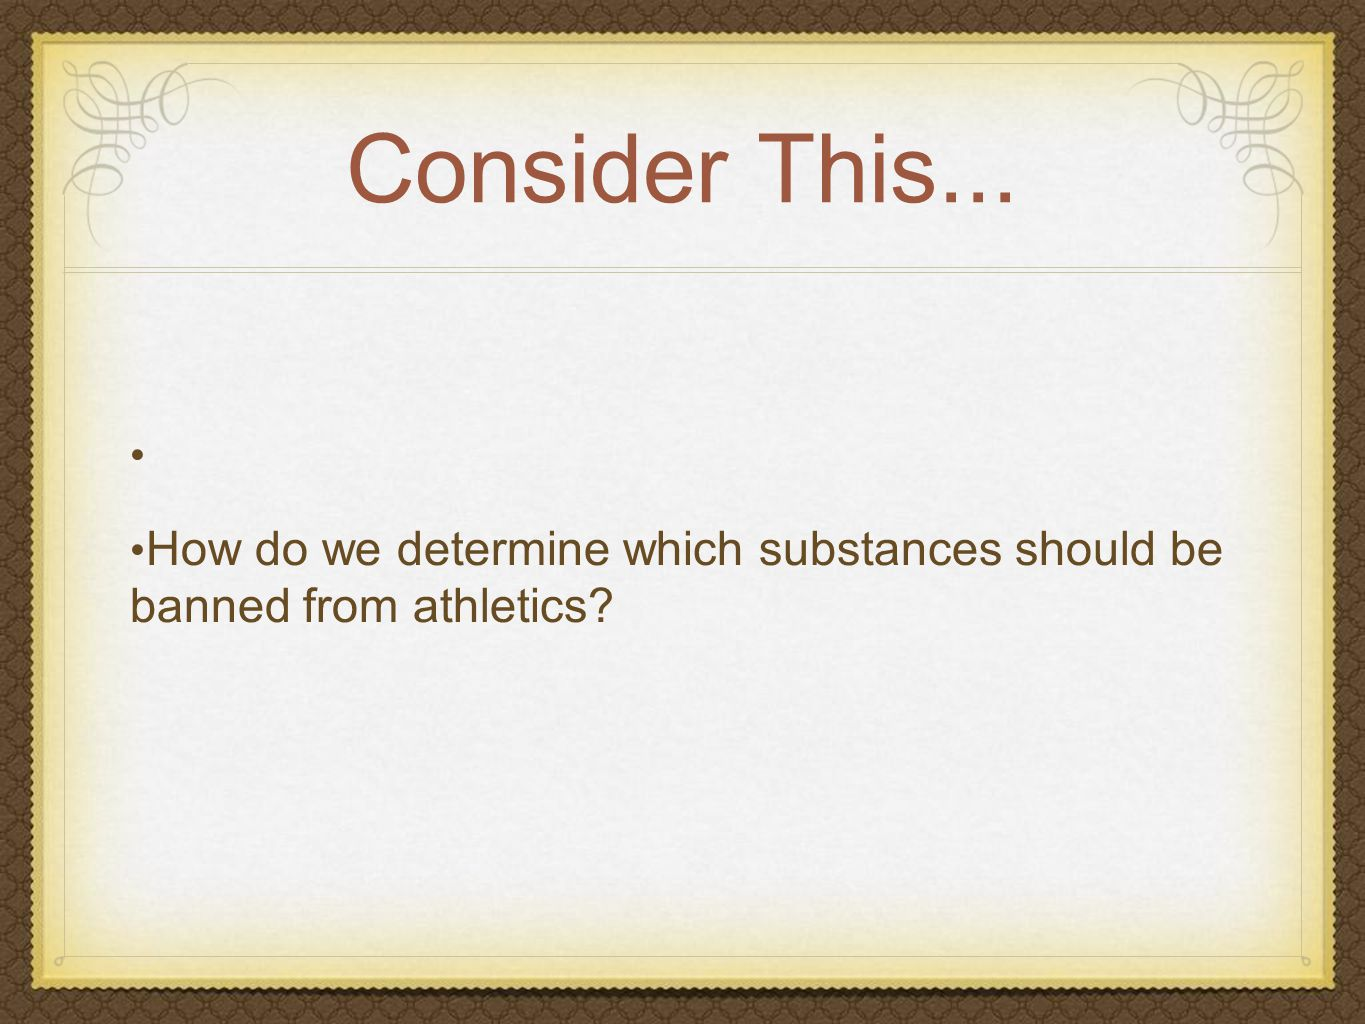 Consider This... How do we determine which substances should be banned from athletics